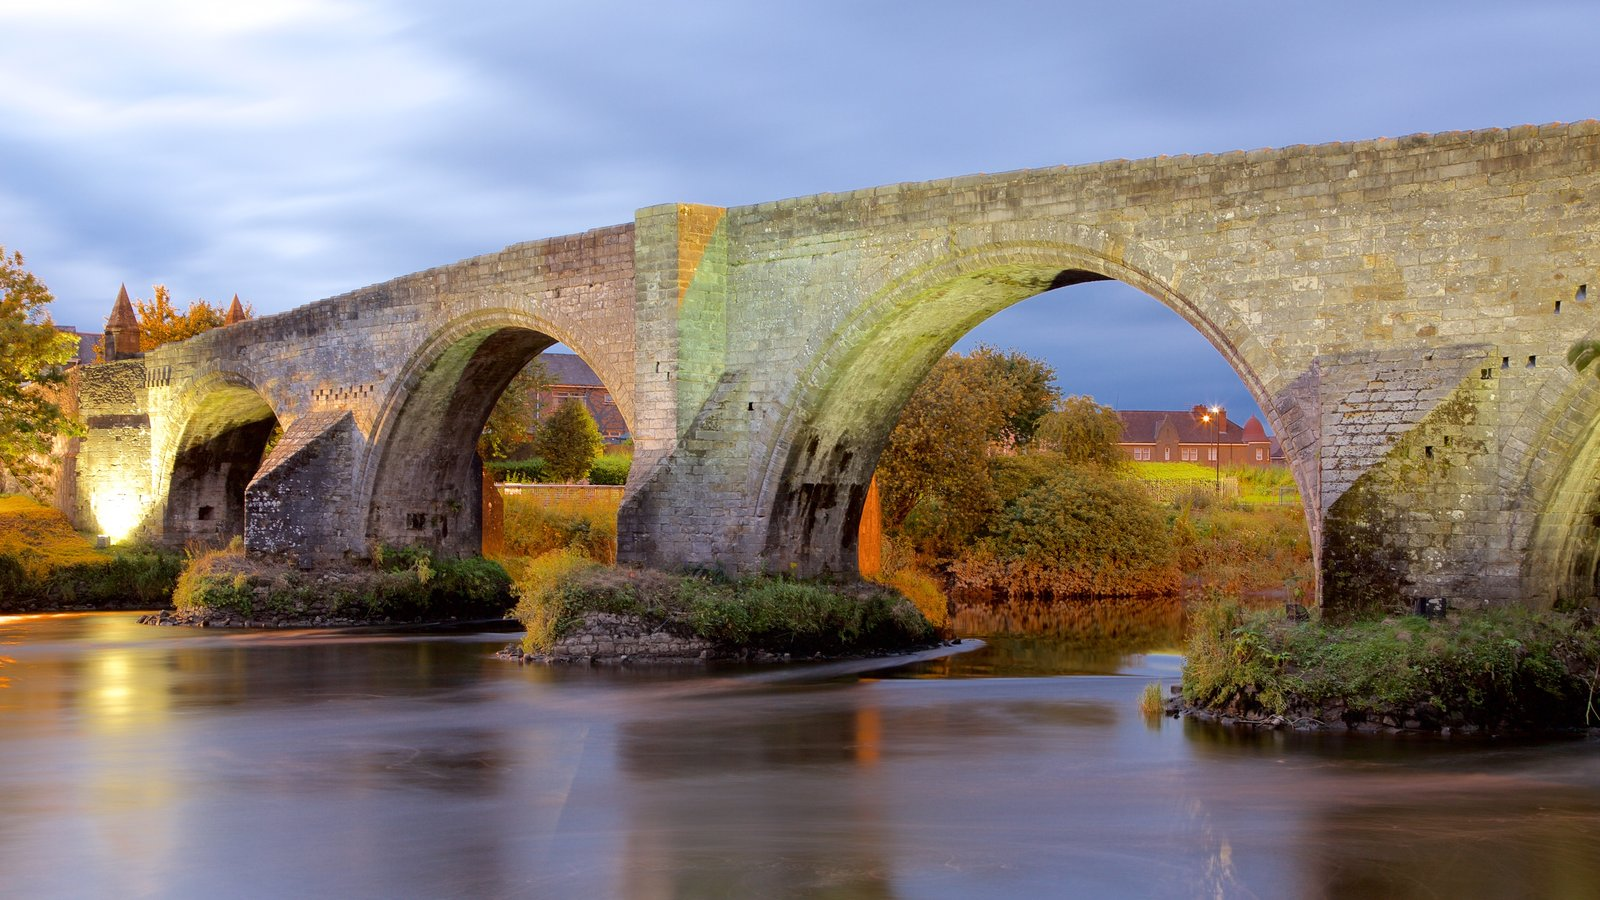 Stirling showing a river or creek, heritage elements and a bridge